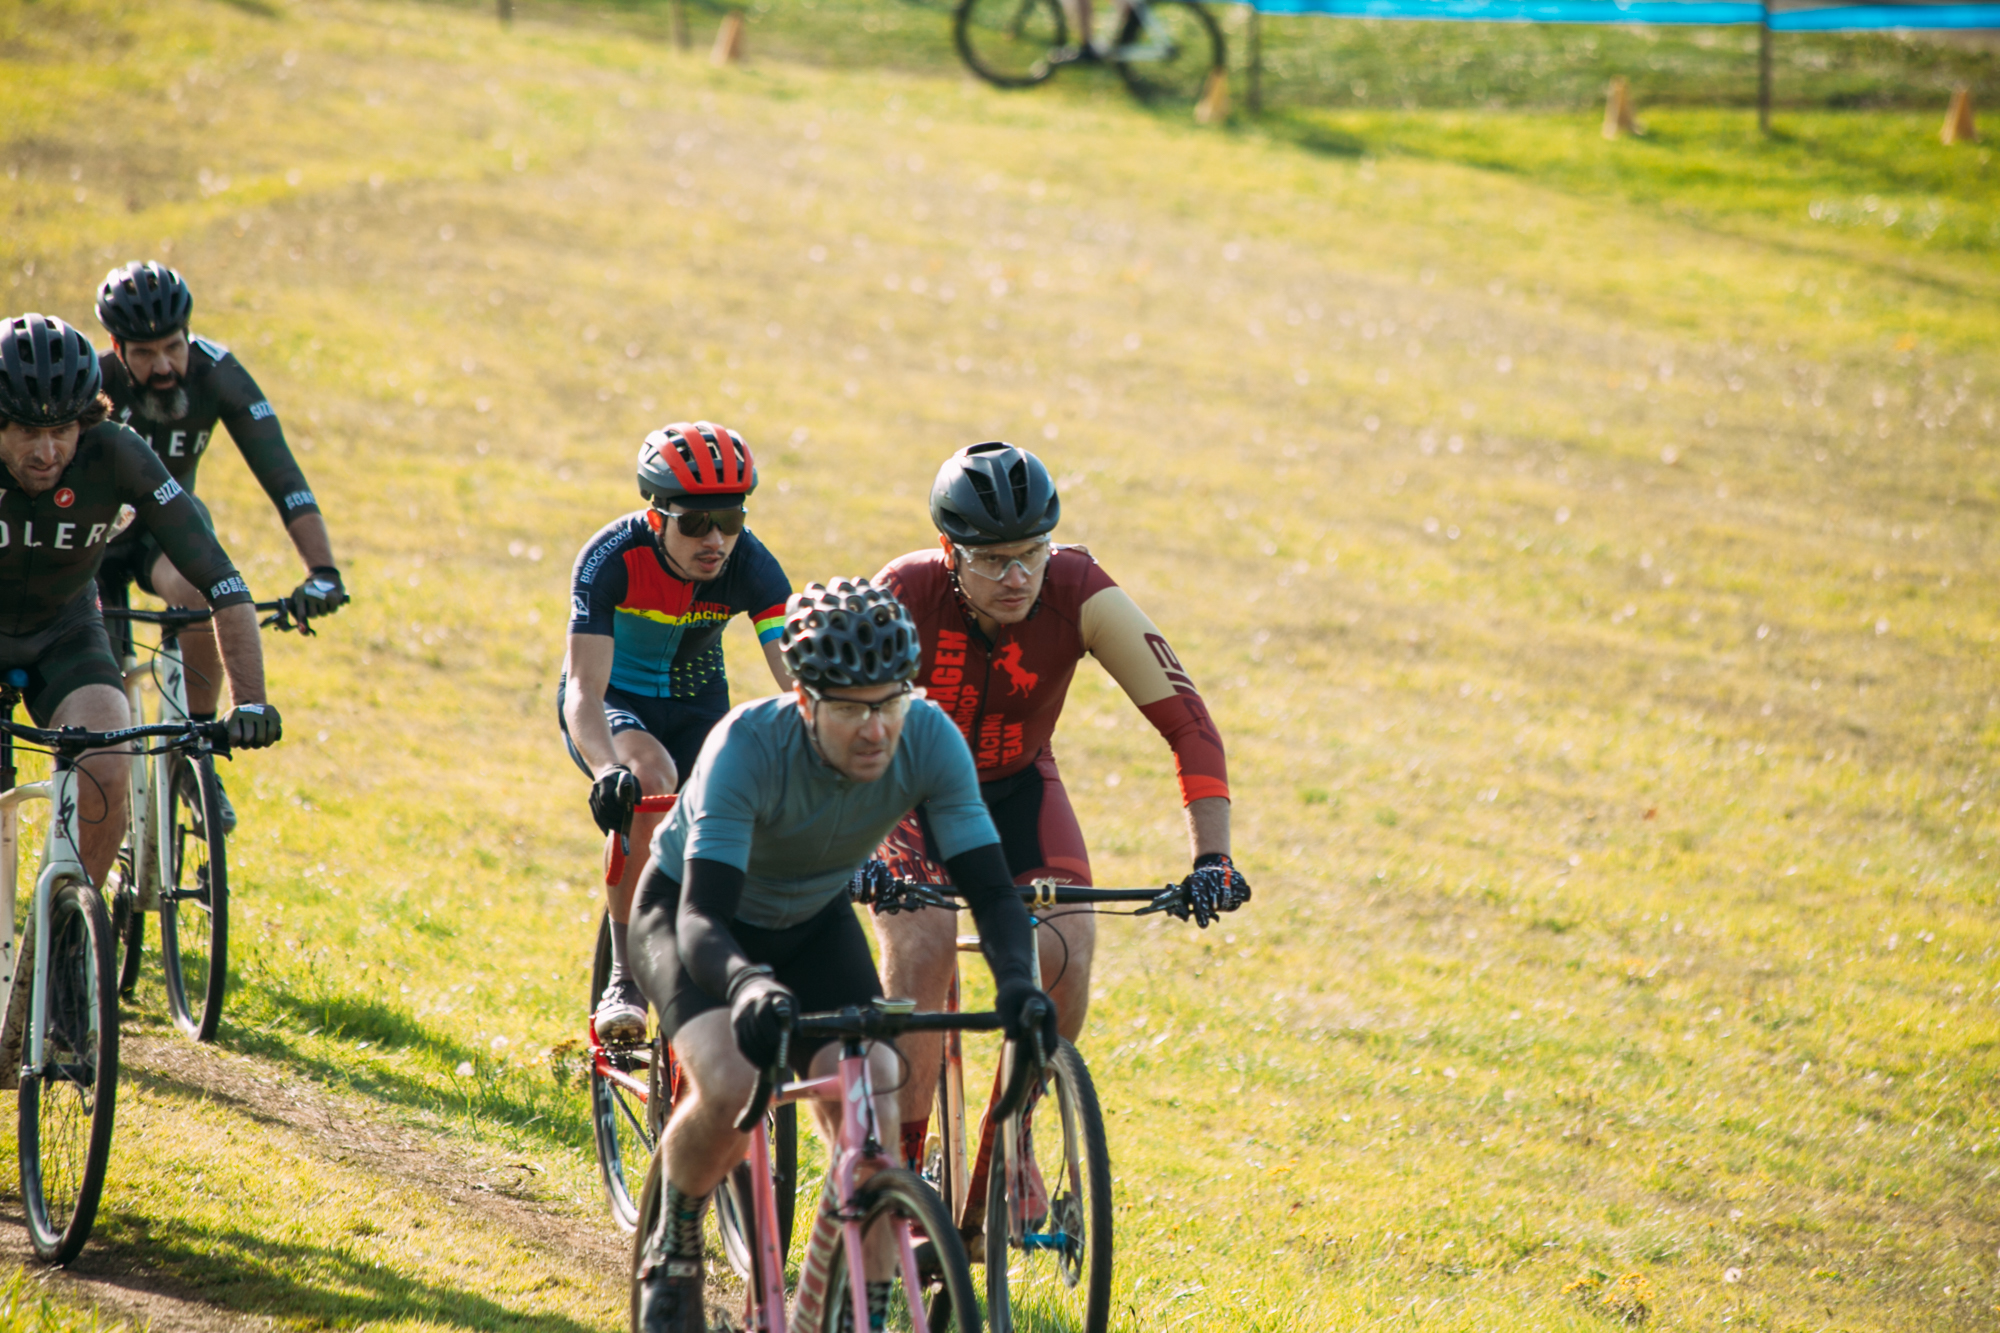 Cyclocross18_CCCX_RainierHS-52-mettlecycling.jpg